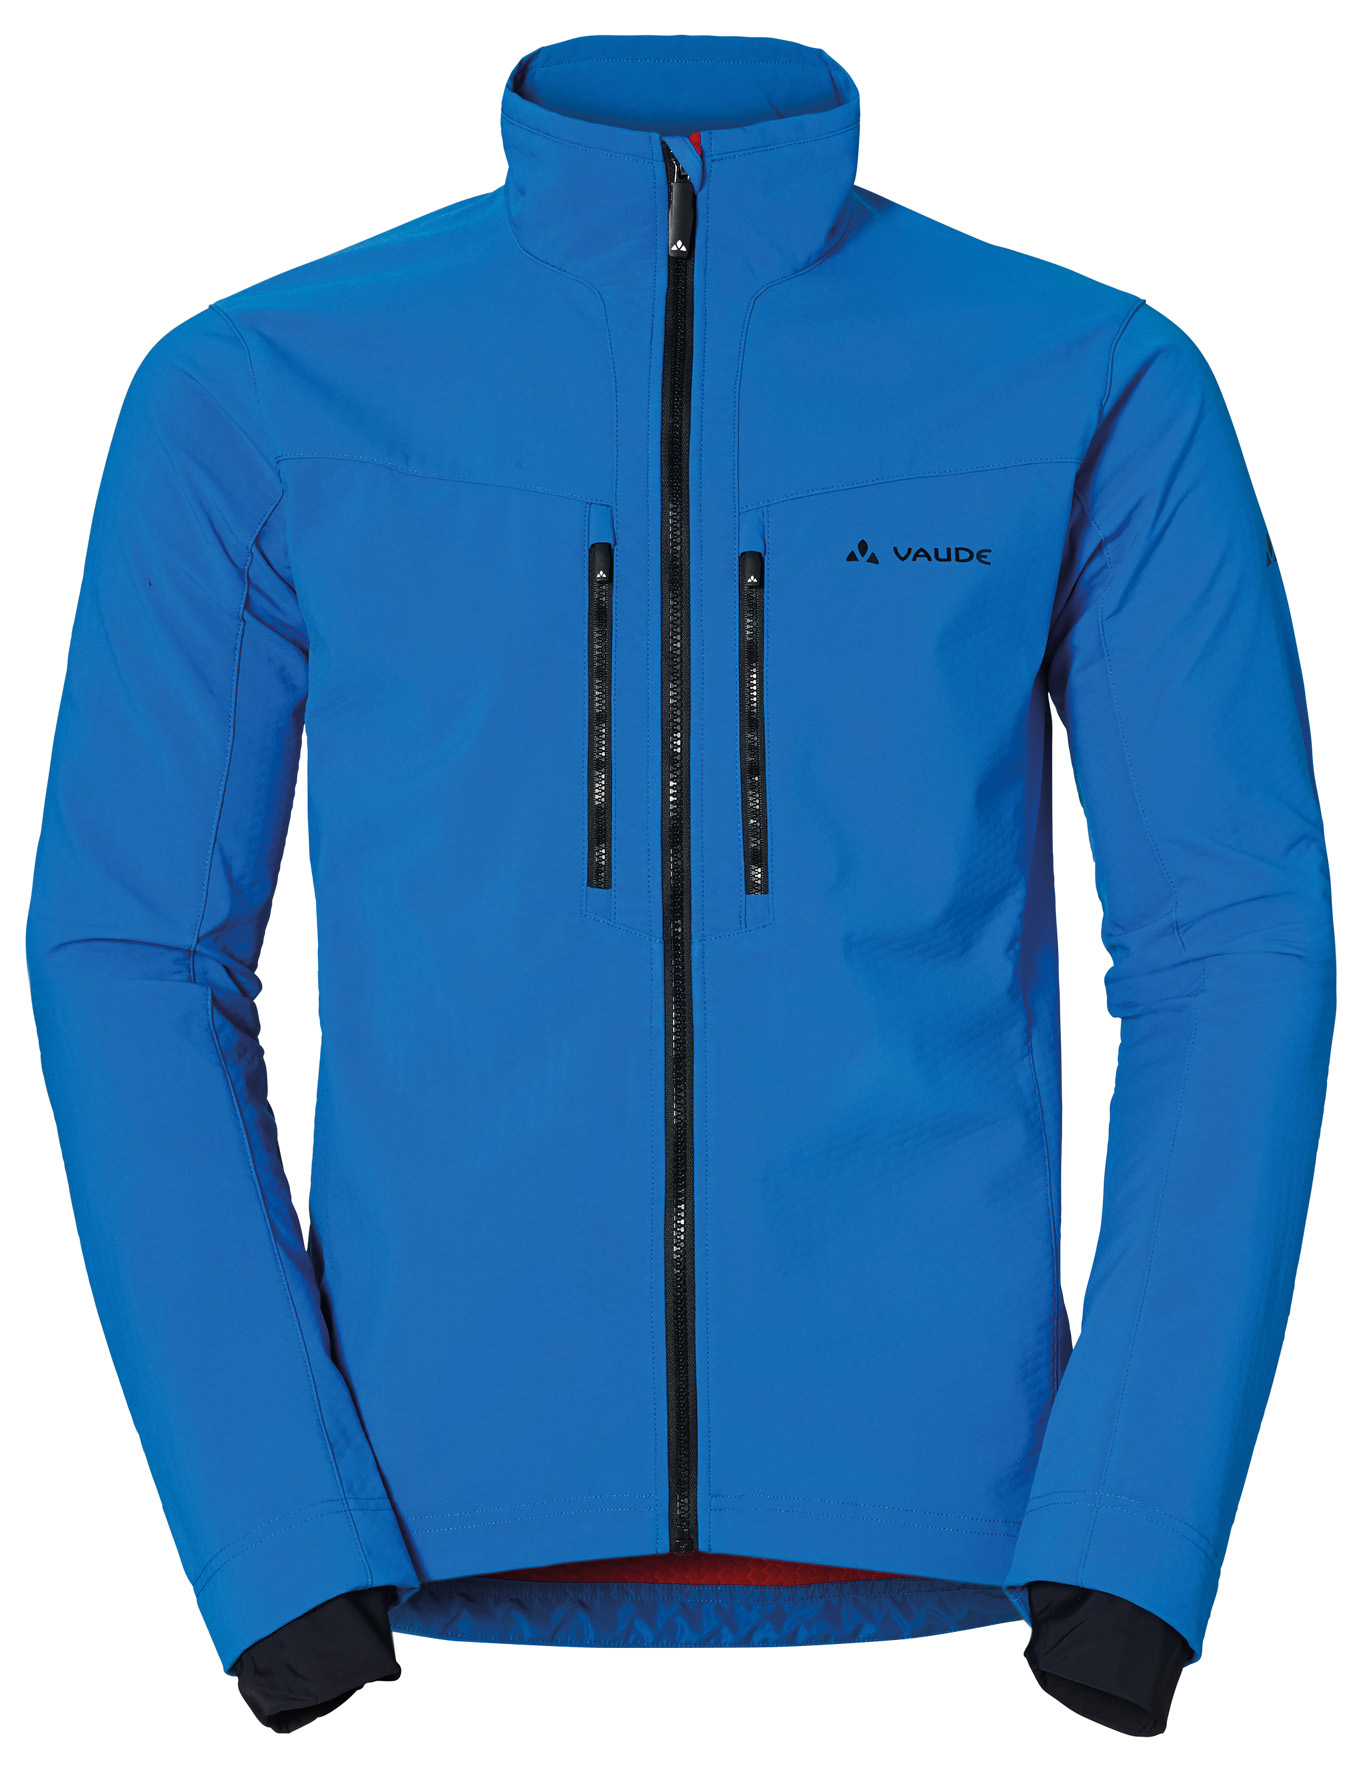 VAUDE Men´s Qimsa Softshell Jacket hydro blue Größe L - schneider-sports